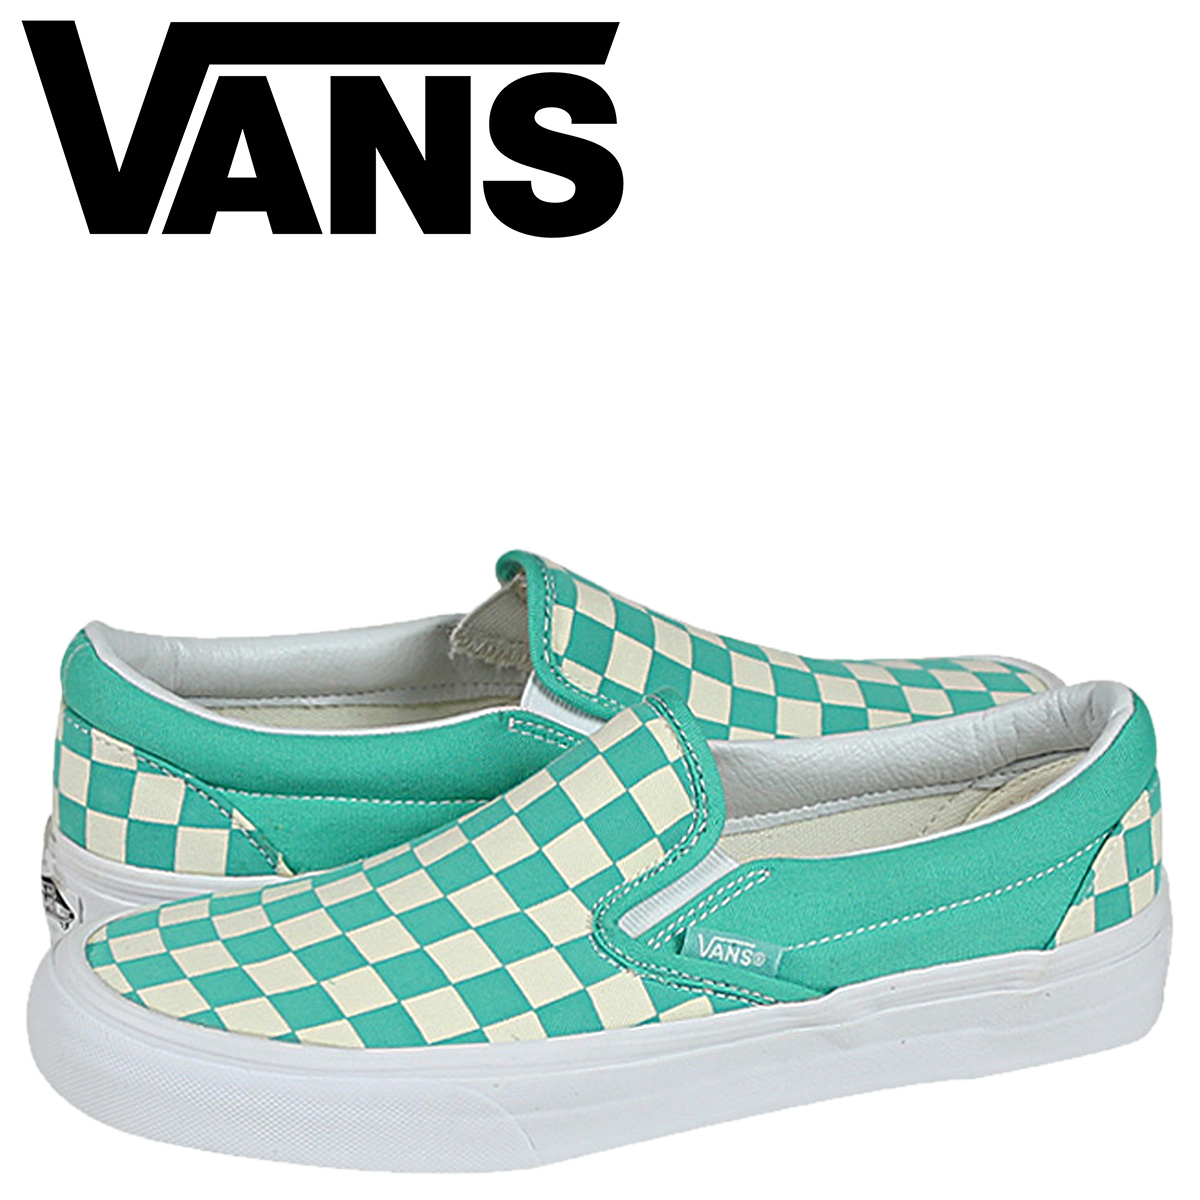 Vans VANS CLASSIC SLIP ON sneaker classic slip on canvas mens Womens VN 0XG8DEU Aqua green white